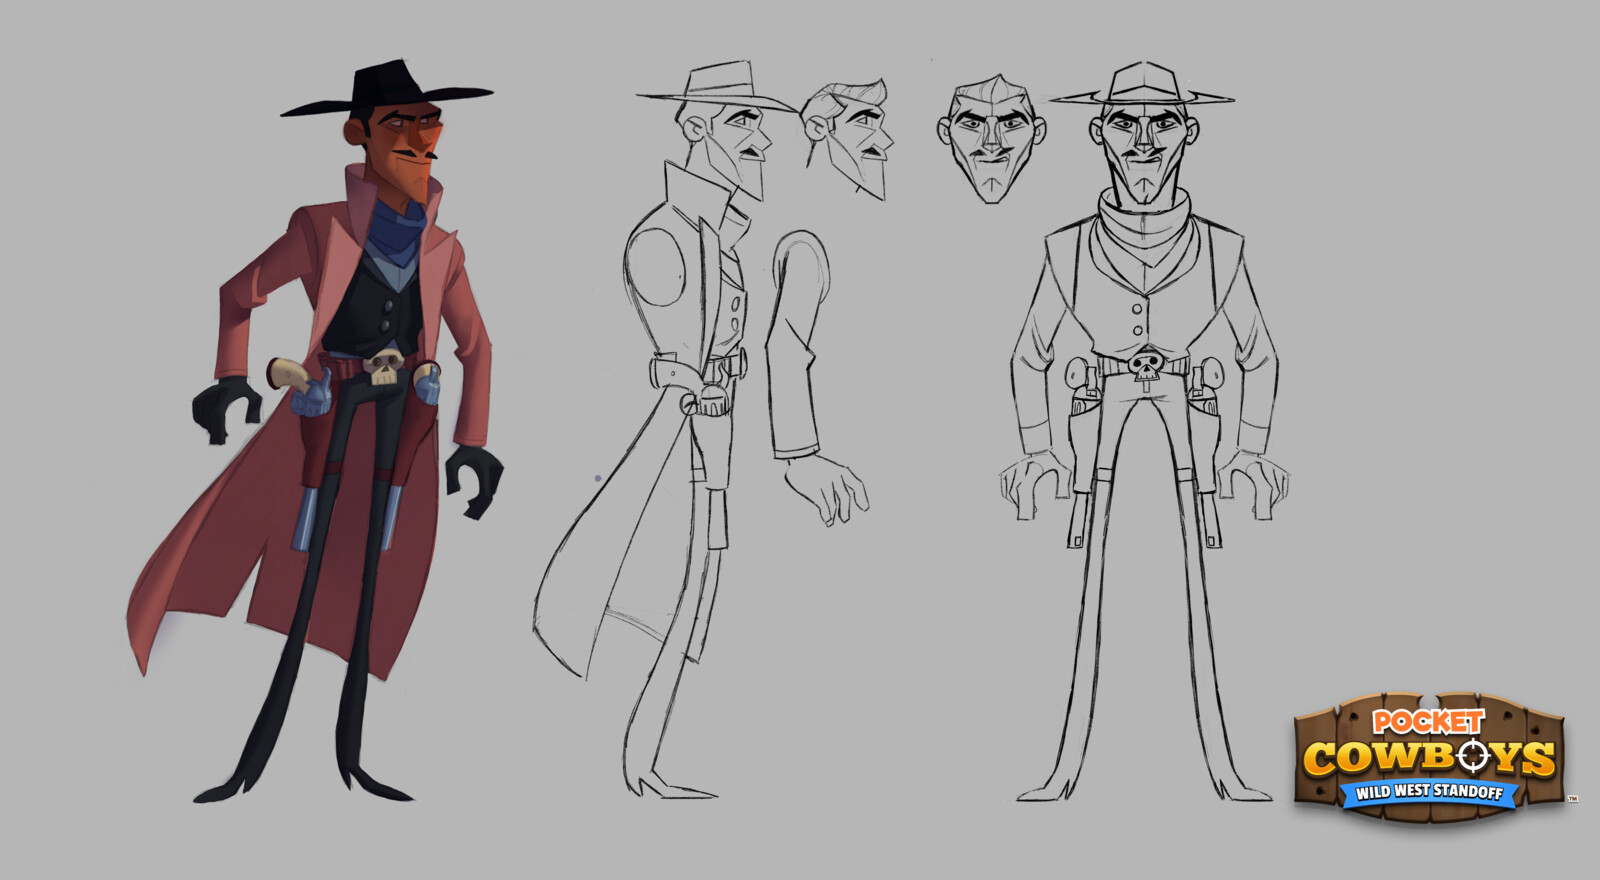 Character designs for Pocket Cowboys (part 1).